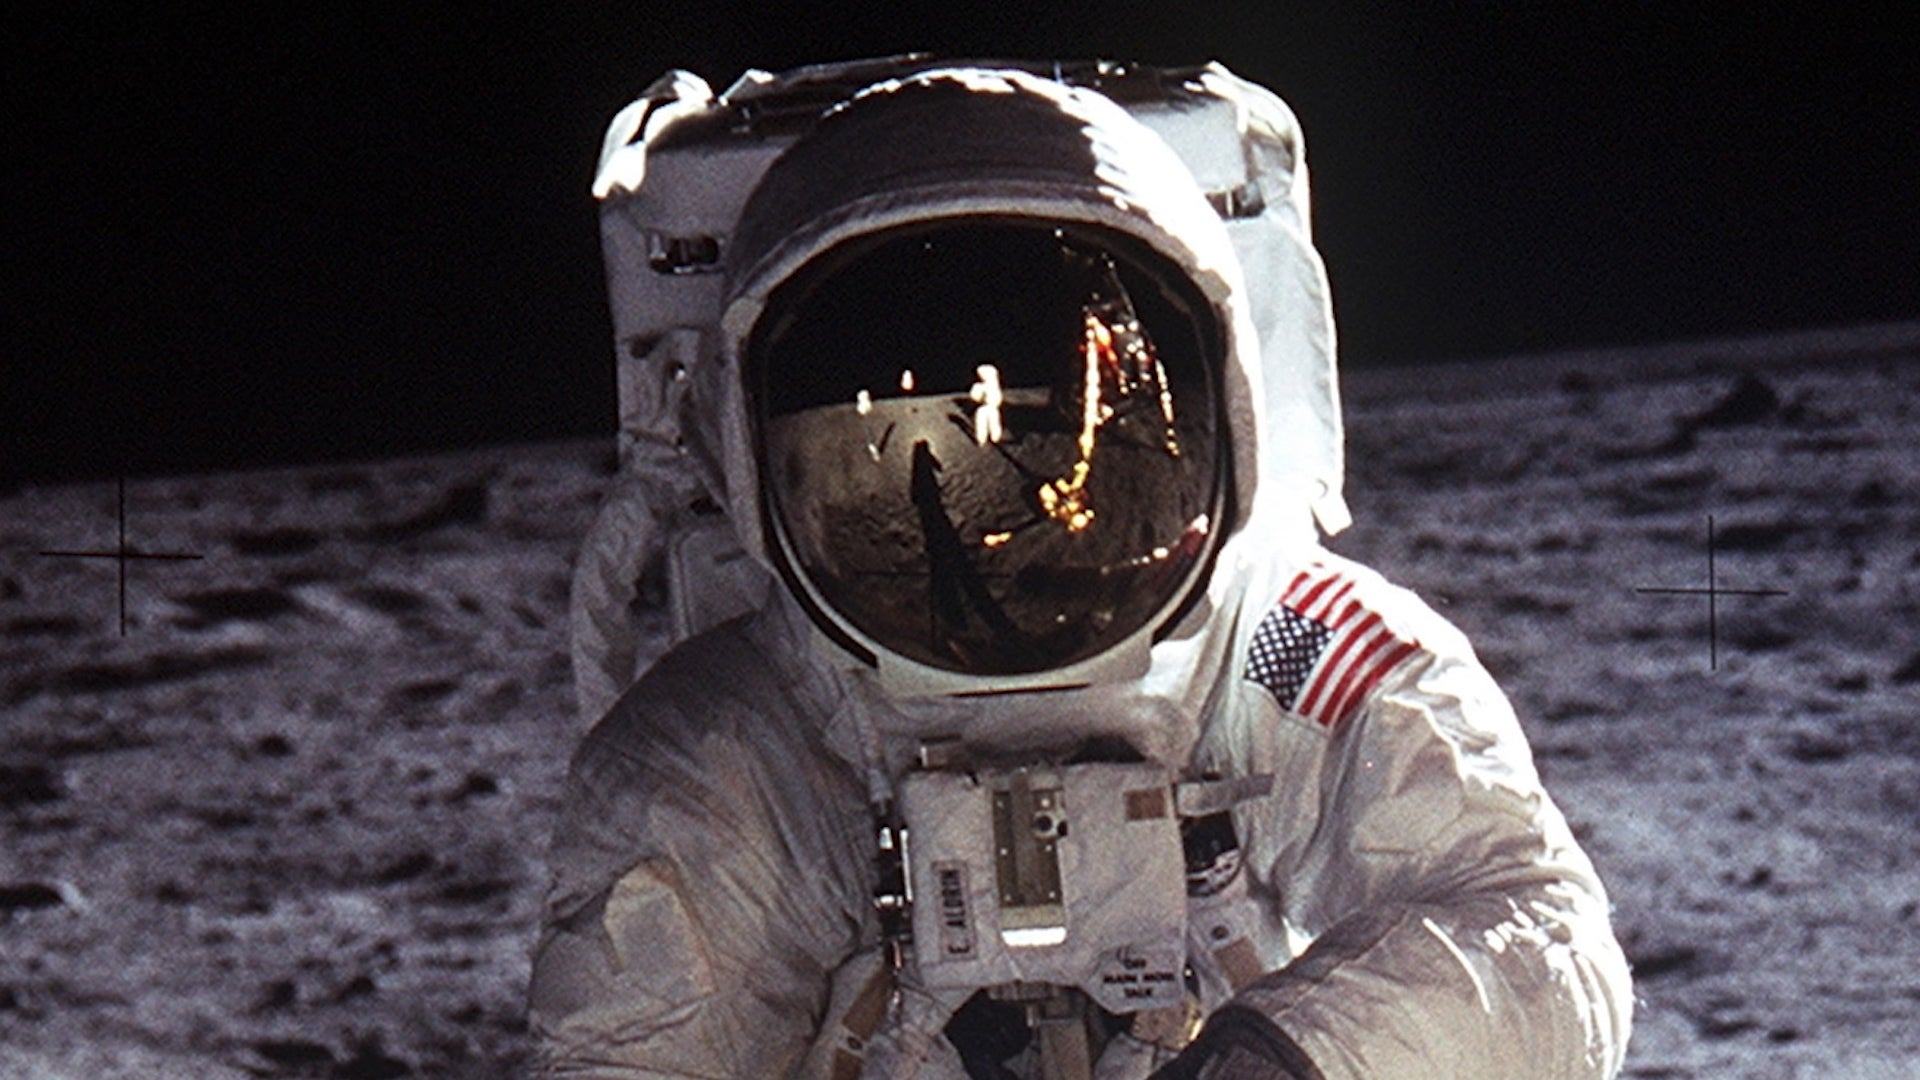 As the 50th anniversary of Apollo 11 approaches, here are six things you may not have known about the first moon landing.